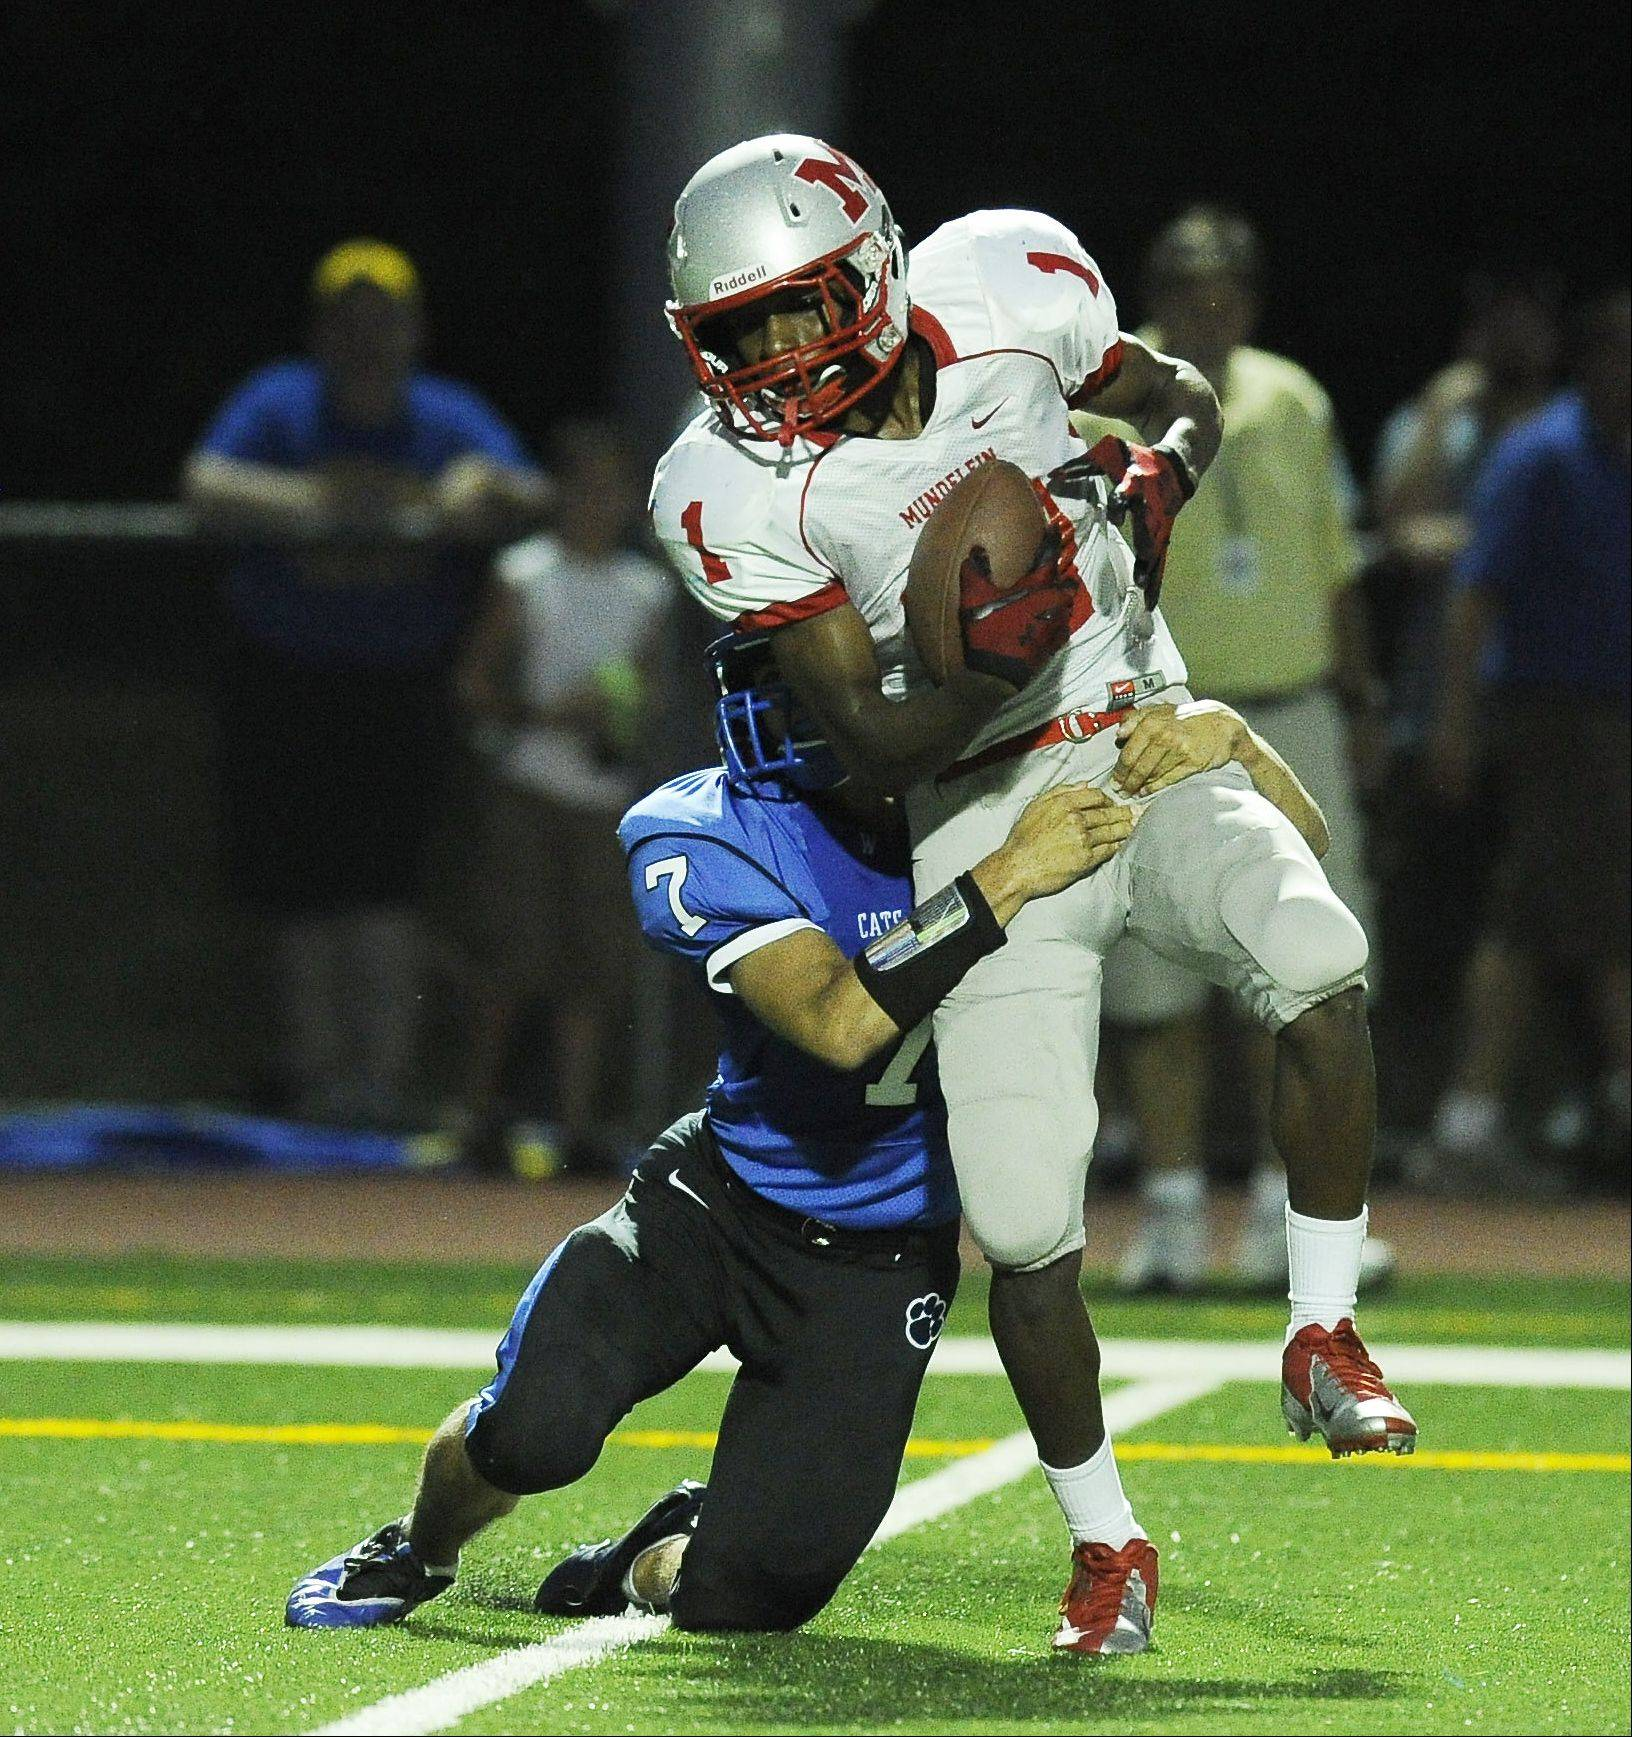 Week 1- Photos from the Mundelein vs. Wheeling football game on Friday, August 24th at Wheeling High School.